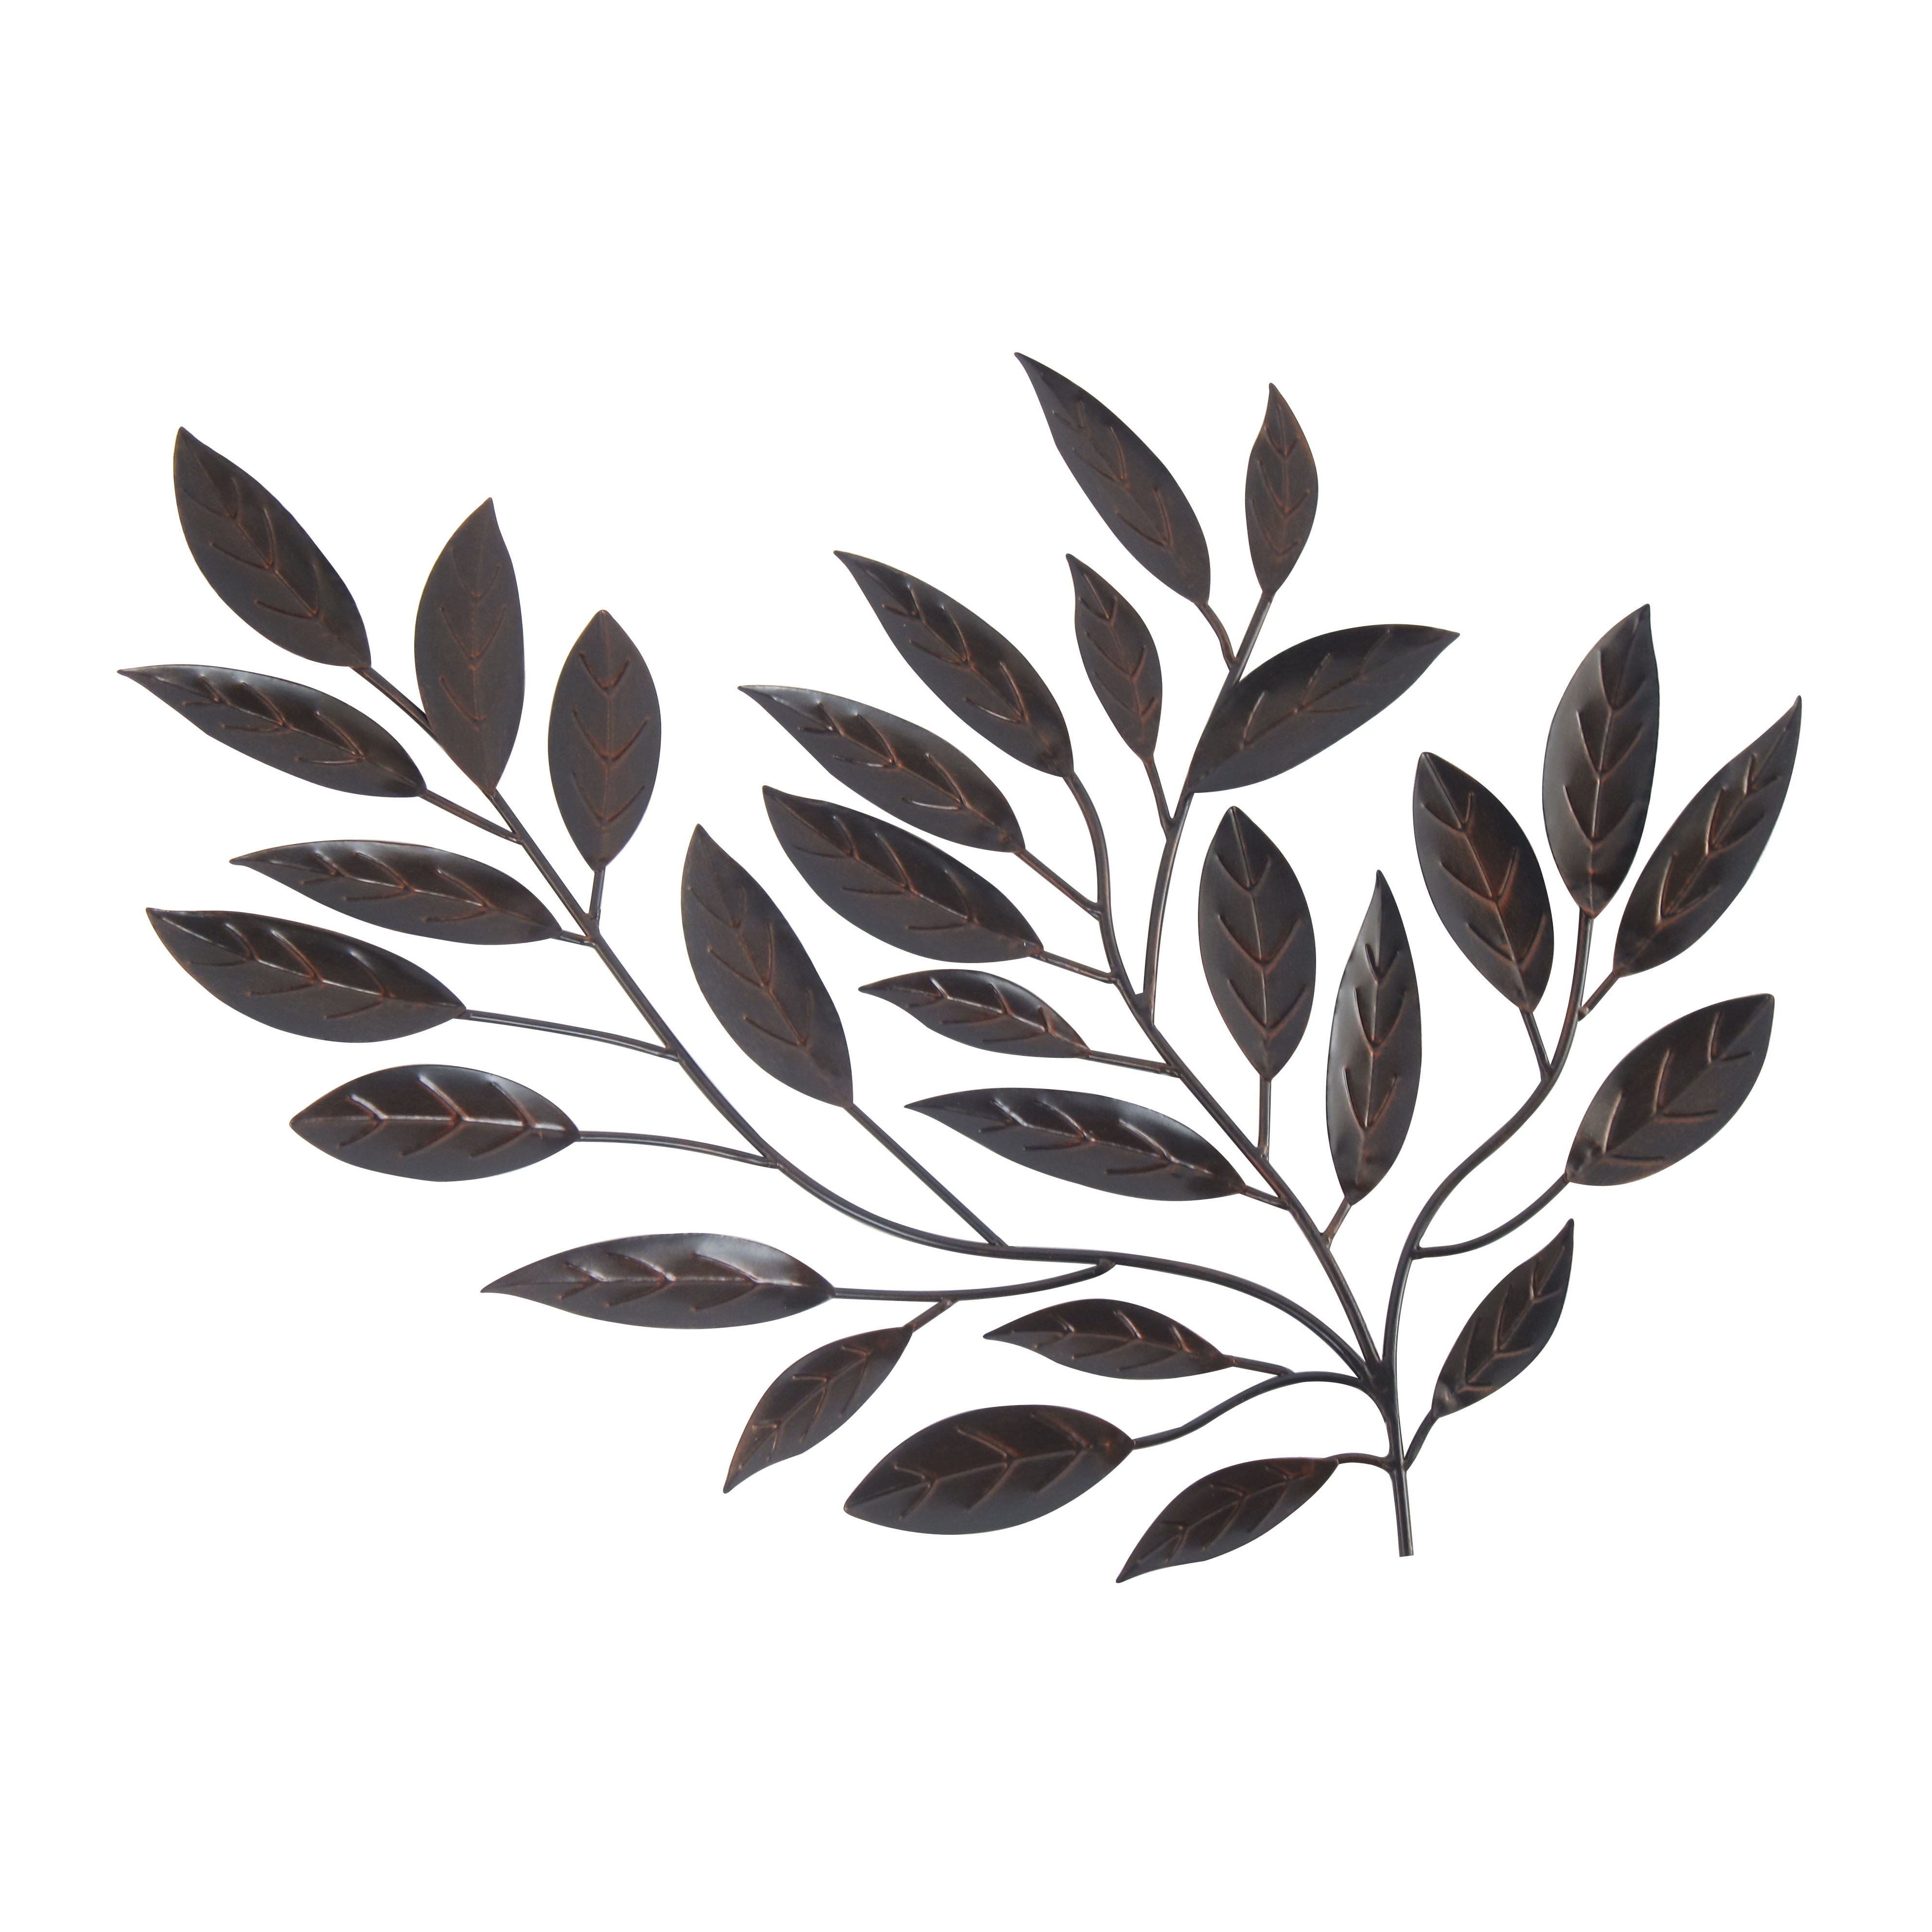 Leaves Wall Decor - Ronniebrownlifesystems inside Leaves Metal Sculpture Wall Decor (Image 22 of 30)